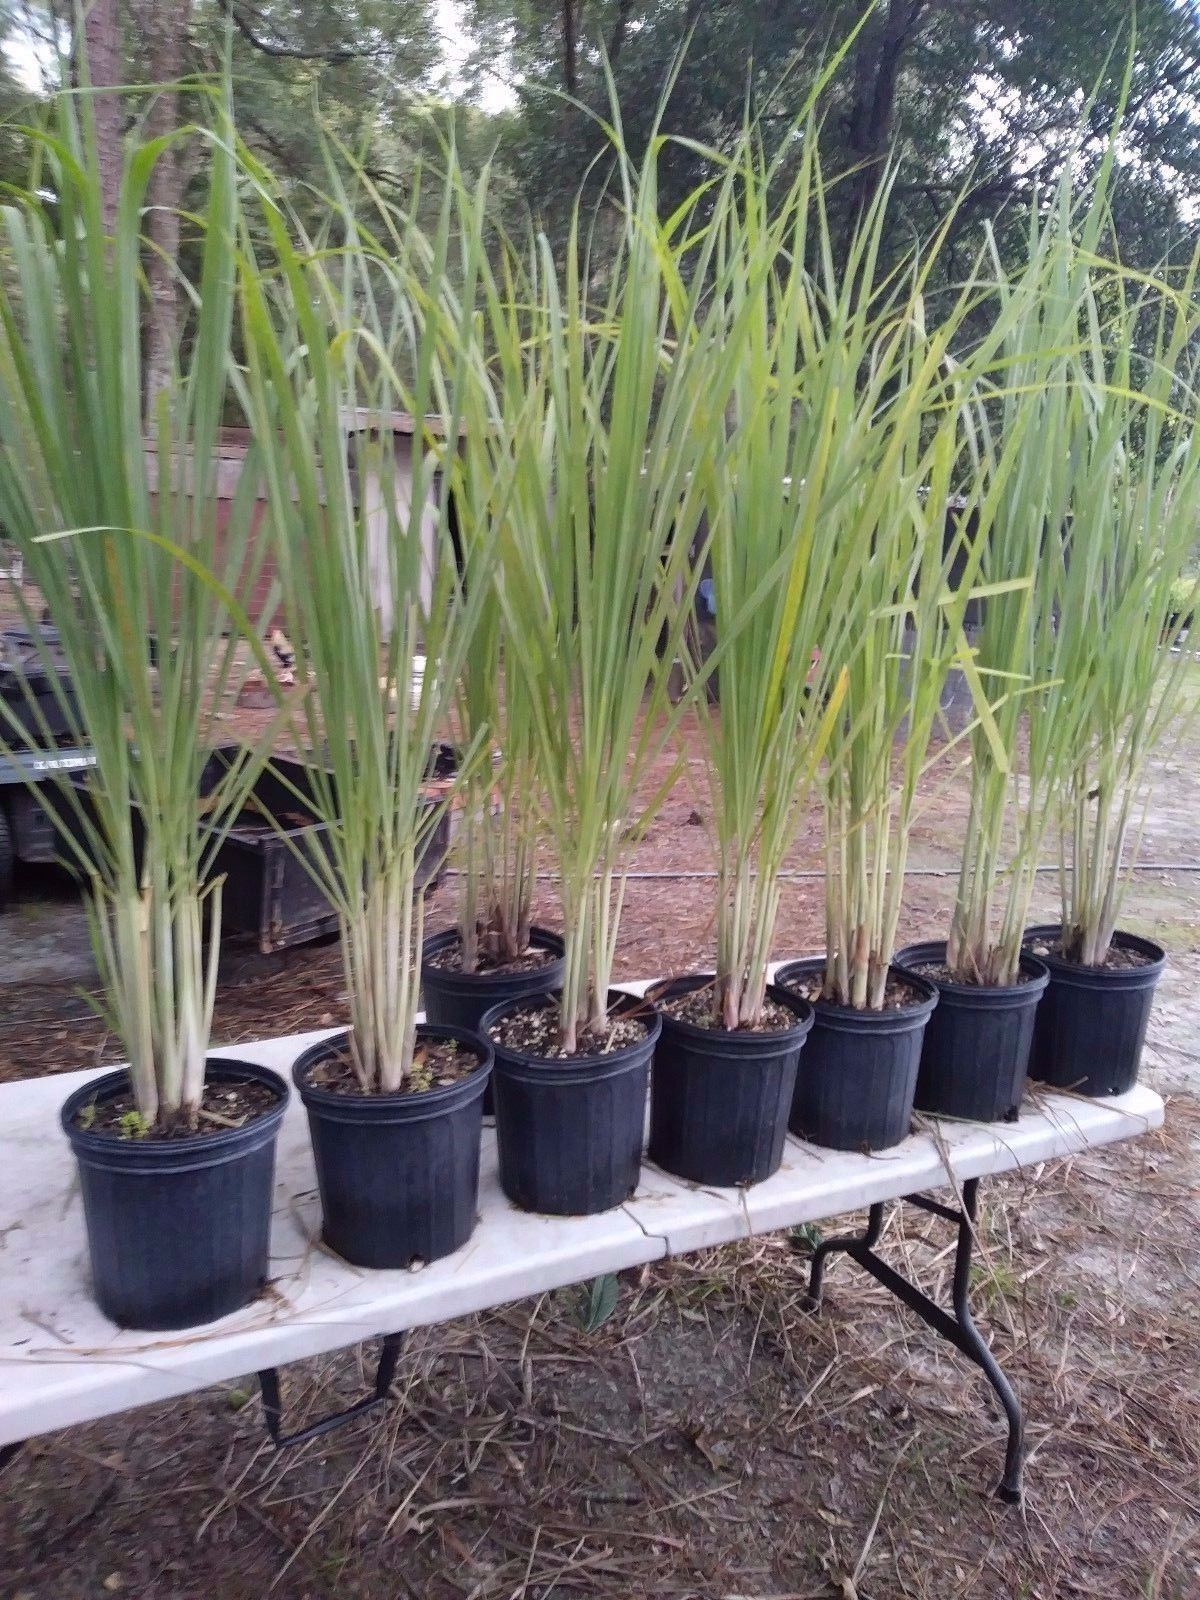 Lemongrass for Sale on Ebay 10 Live Plants Each 5In to 14In Tall fully rooted - $28.91